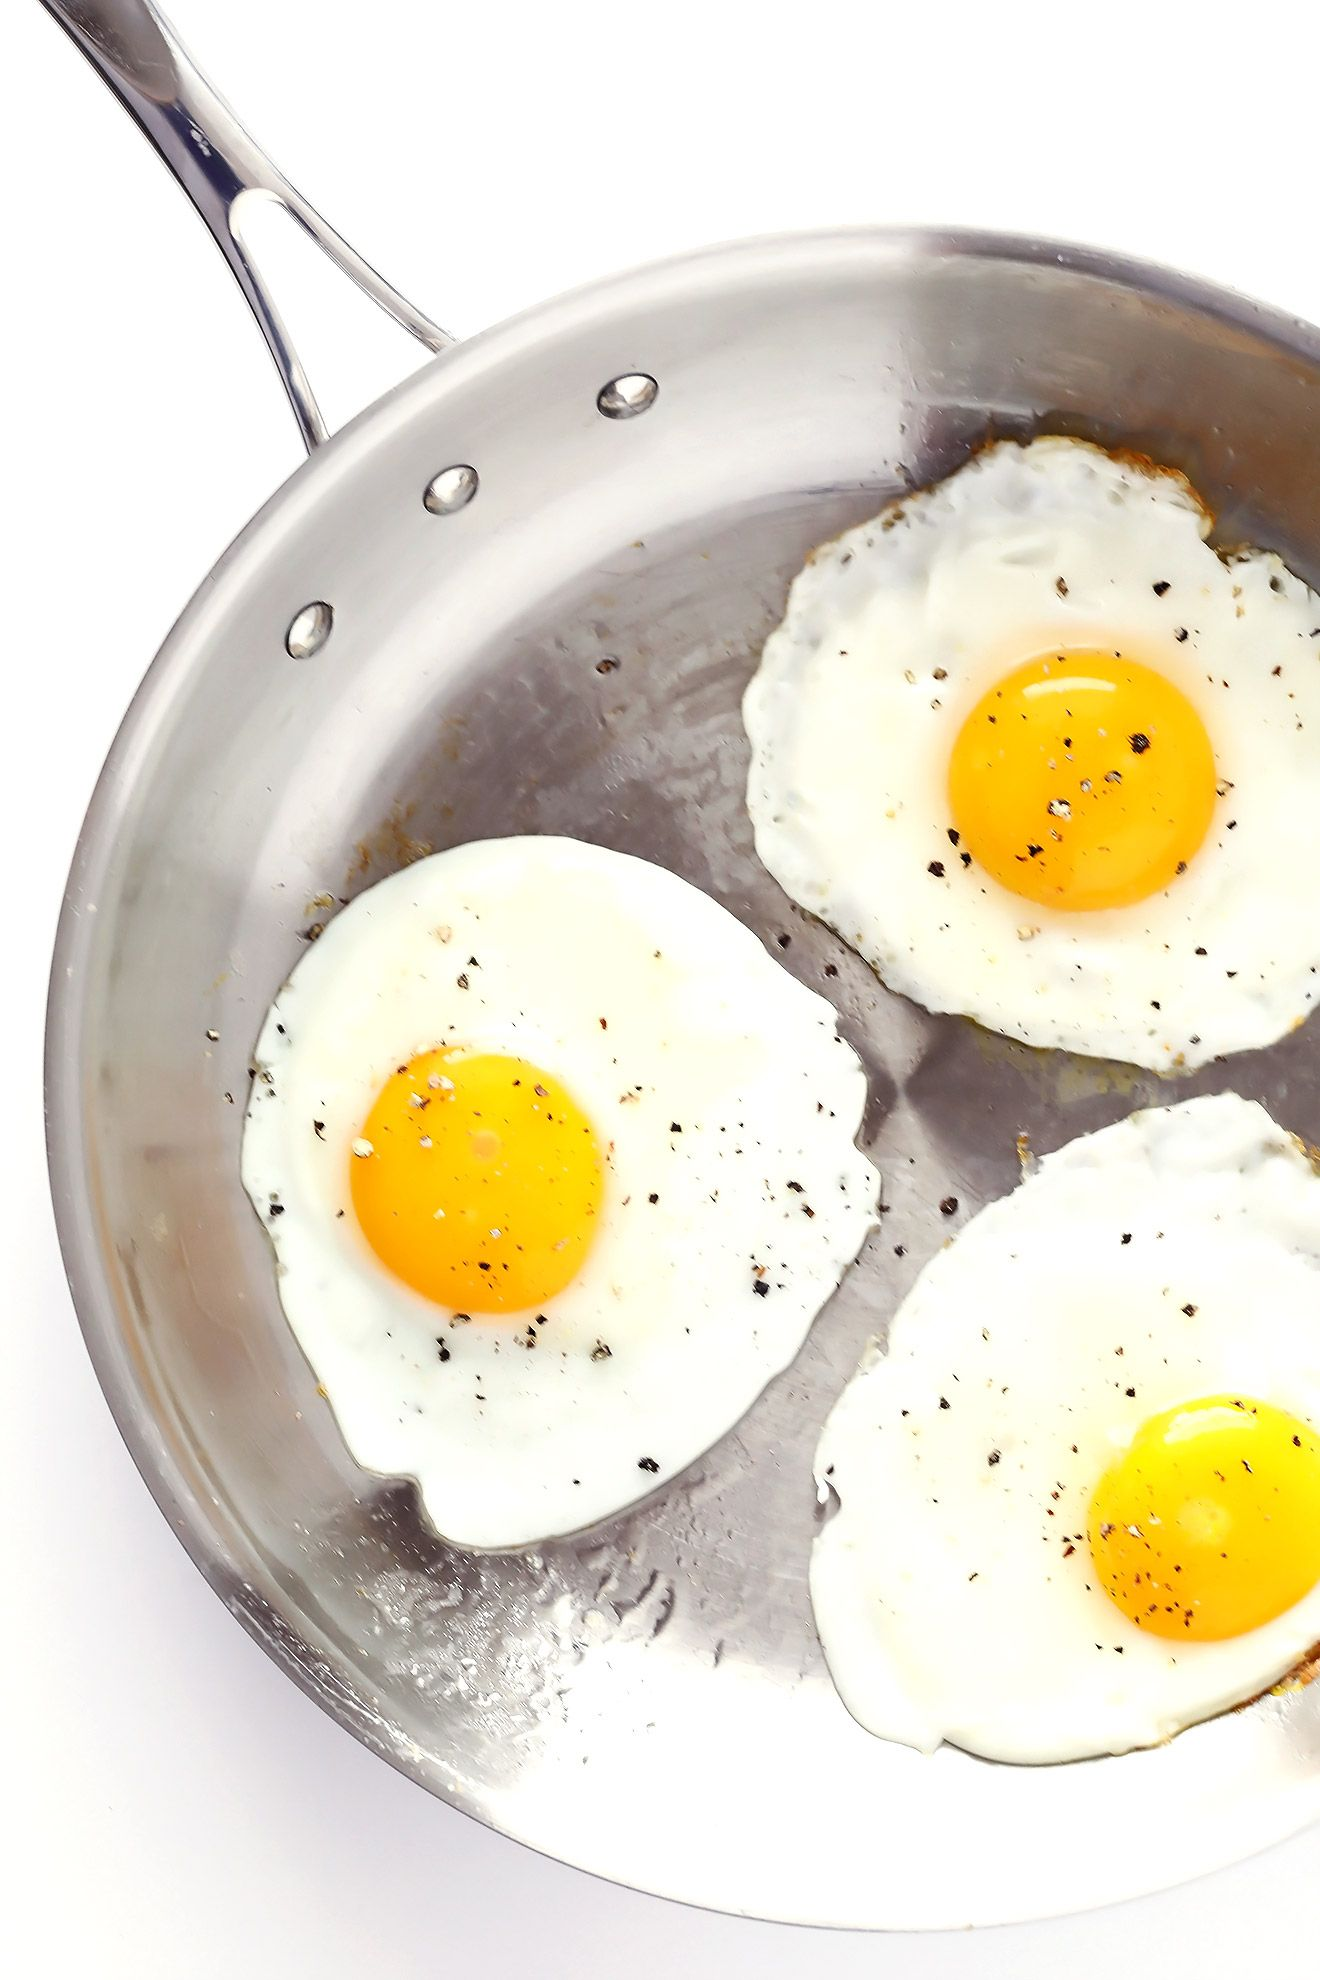 How To Make Fried Eggs 4 Ways Gimme Some Oven Bloglovin Fried Egg How To Cook Eggs Healthy Recipes